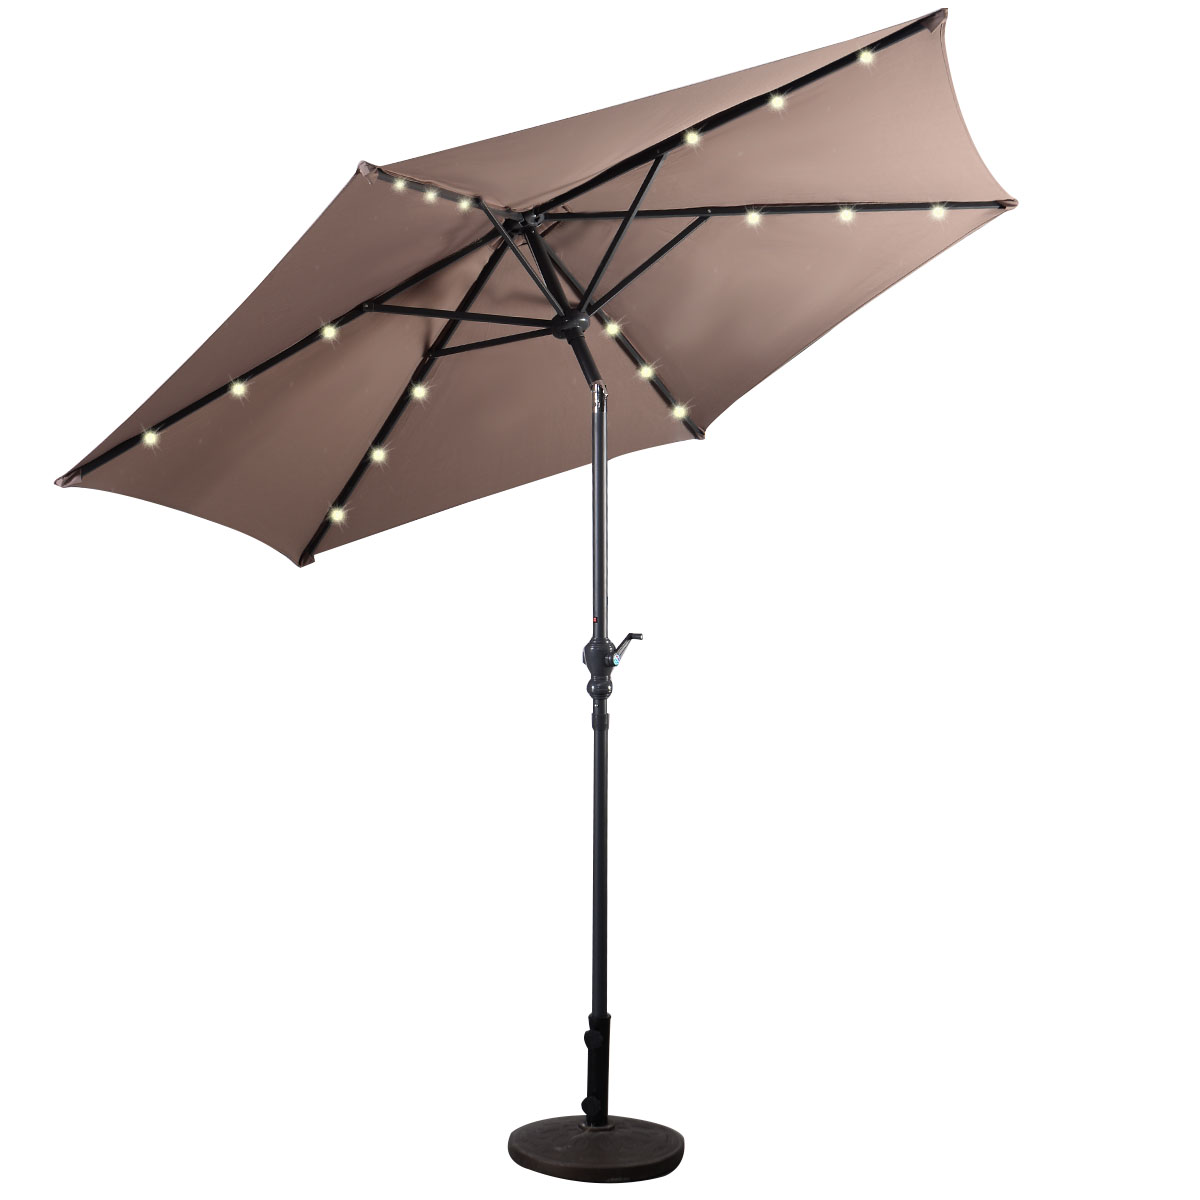 Costway 9ft Patio Solar Umbrella LED Patio Market Steel Tilt W/ Crank  Outdoor (Tan